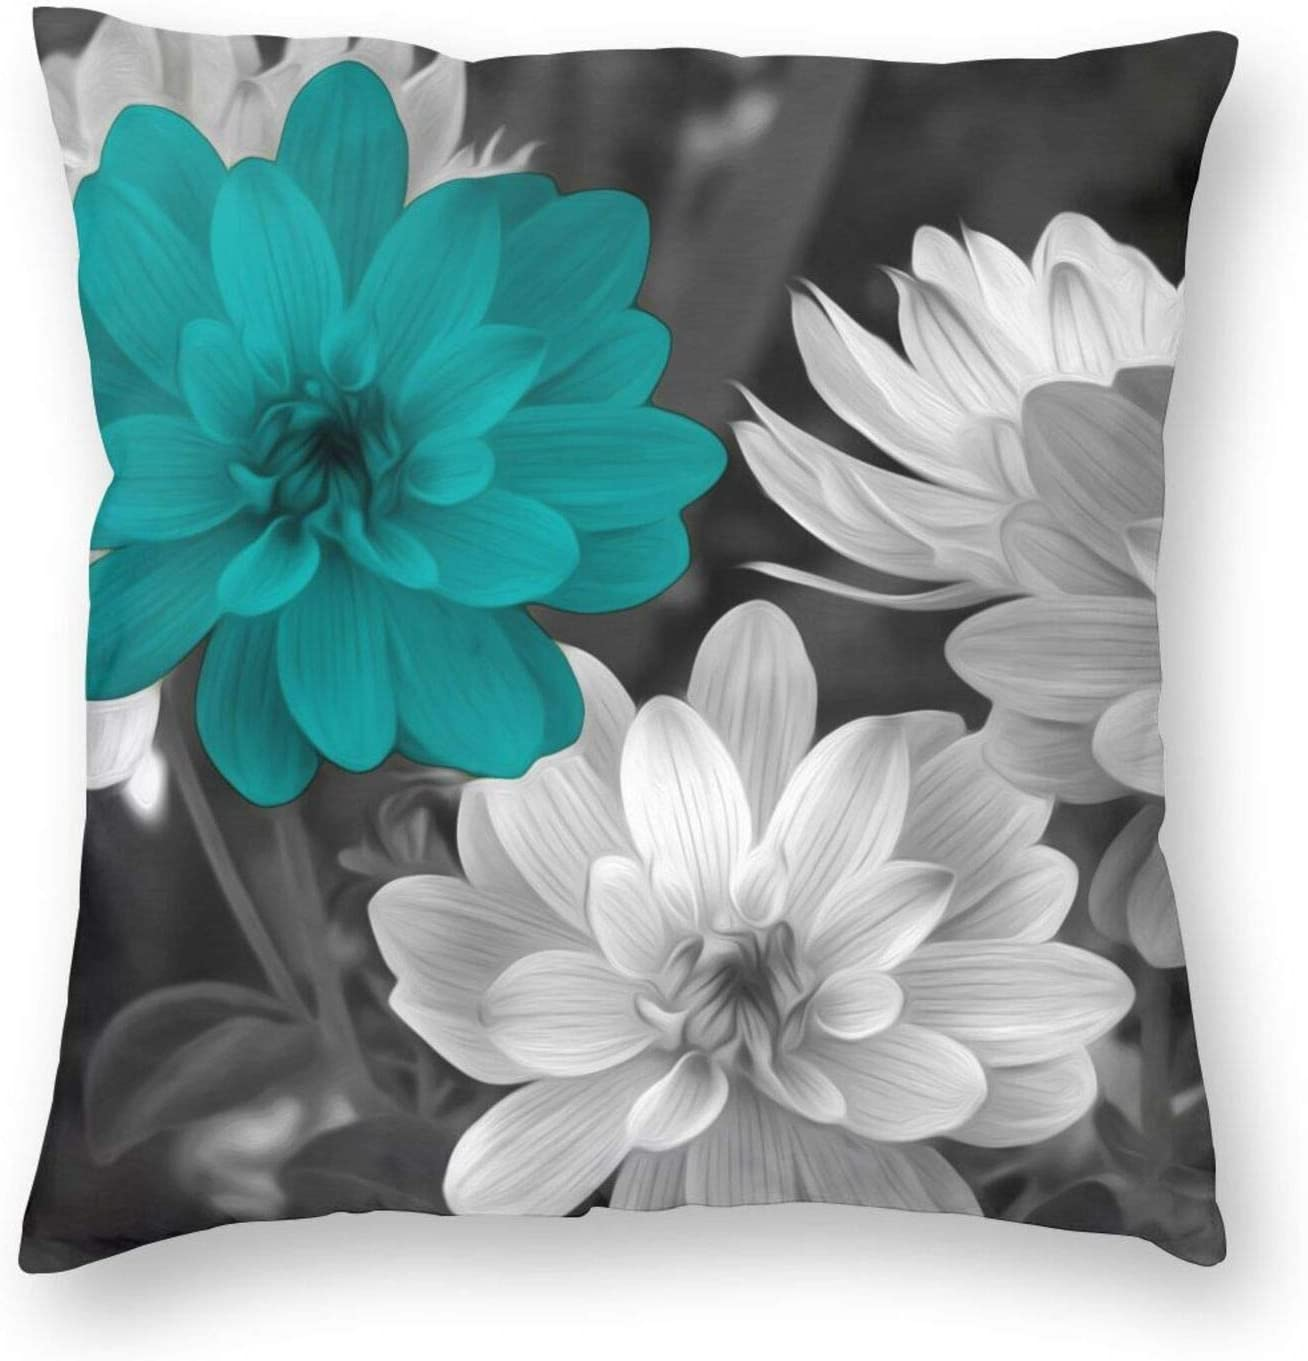 KILOWR Teal Grey Flowers Throw Pillow Covers 18x18 Inch Decorative Pillow Case for Couch Bed Car Home Decor